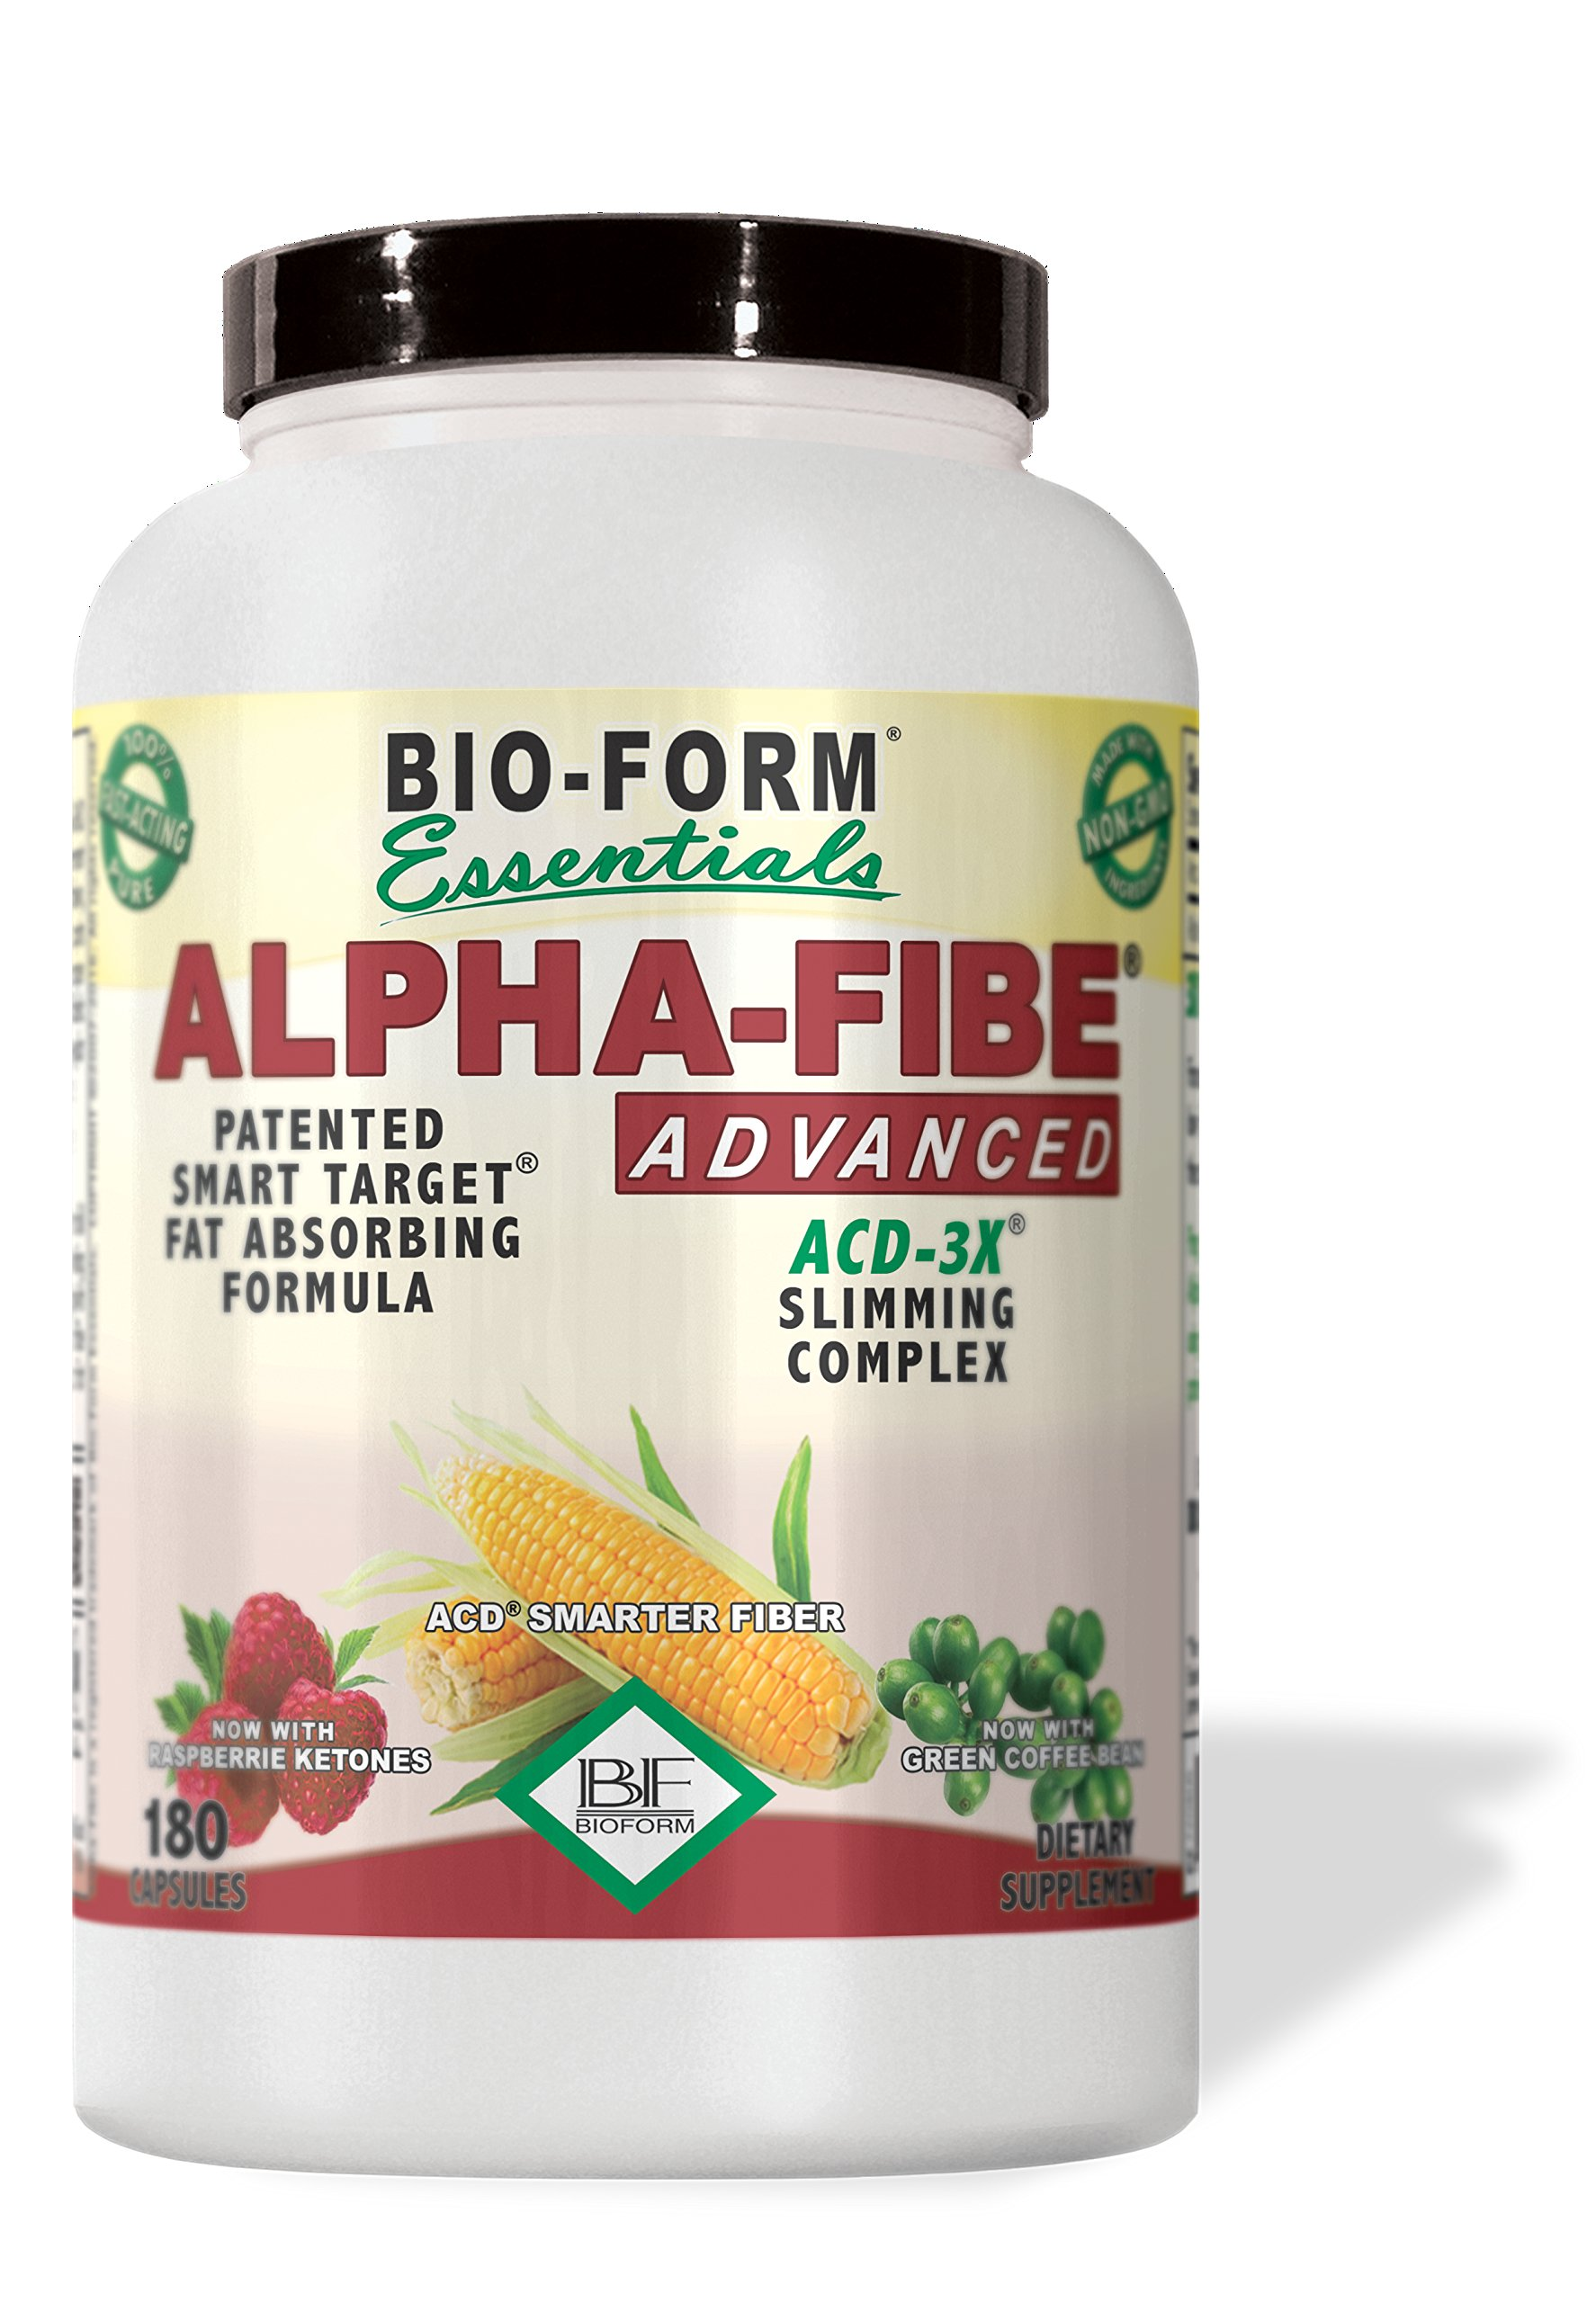 NEW Alpha-Fibe Advanced ACD-3X Slimming Complex (180 Fast-Acting Capsules) With Raspberry Ketones & Green Coffee Bean by Bio-Form Essentials